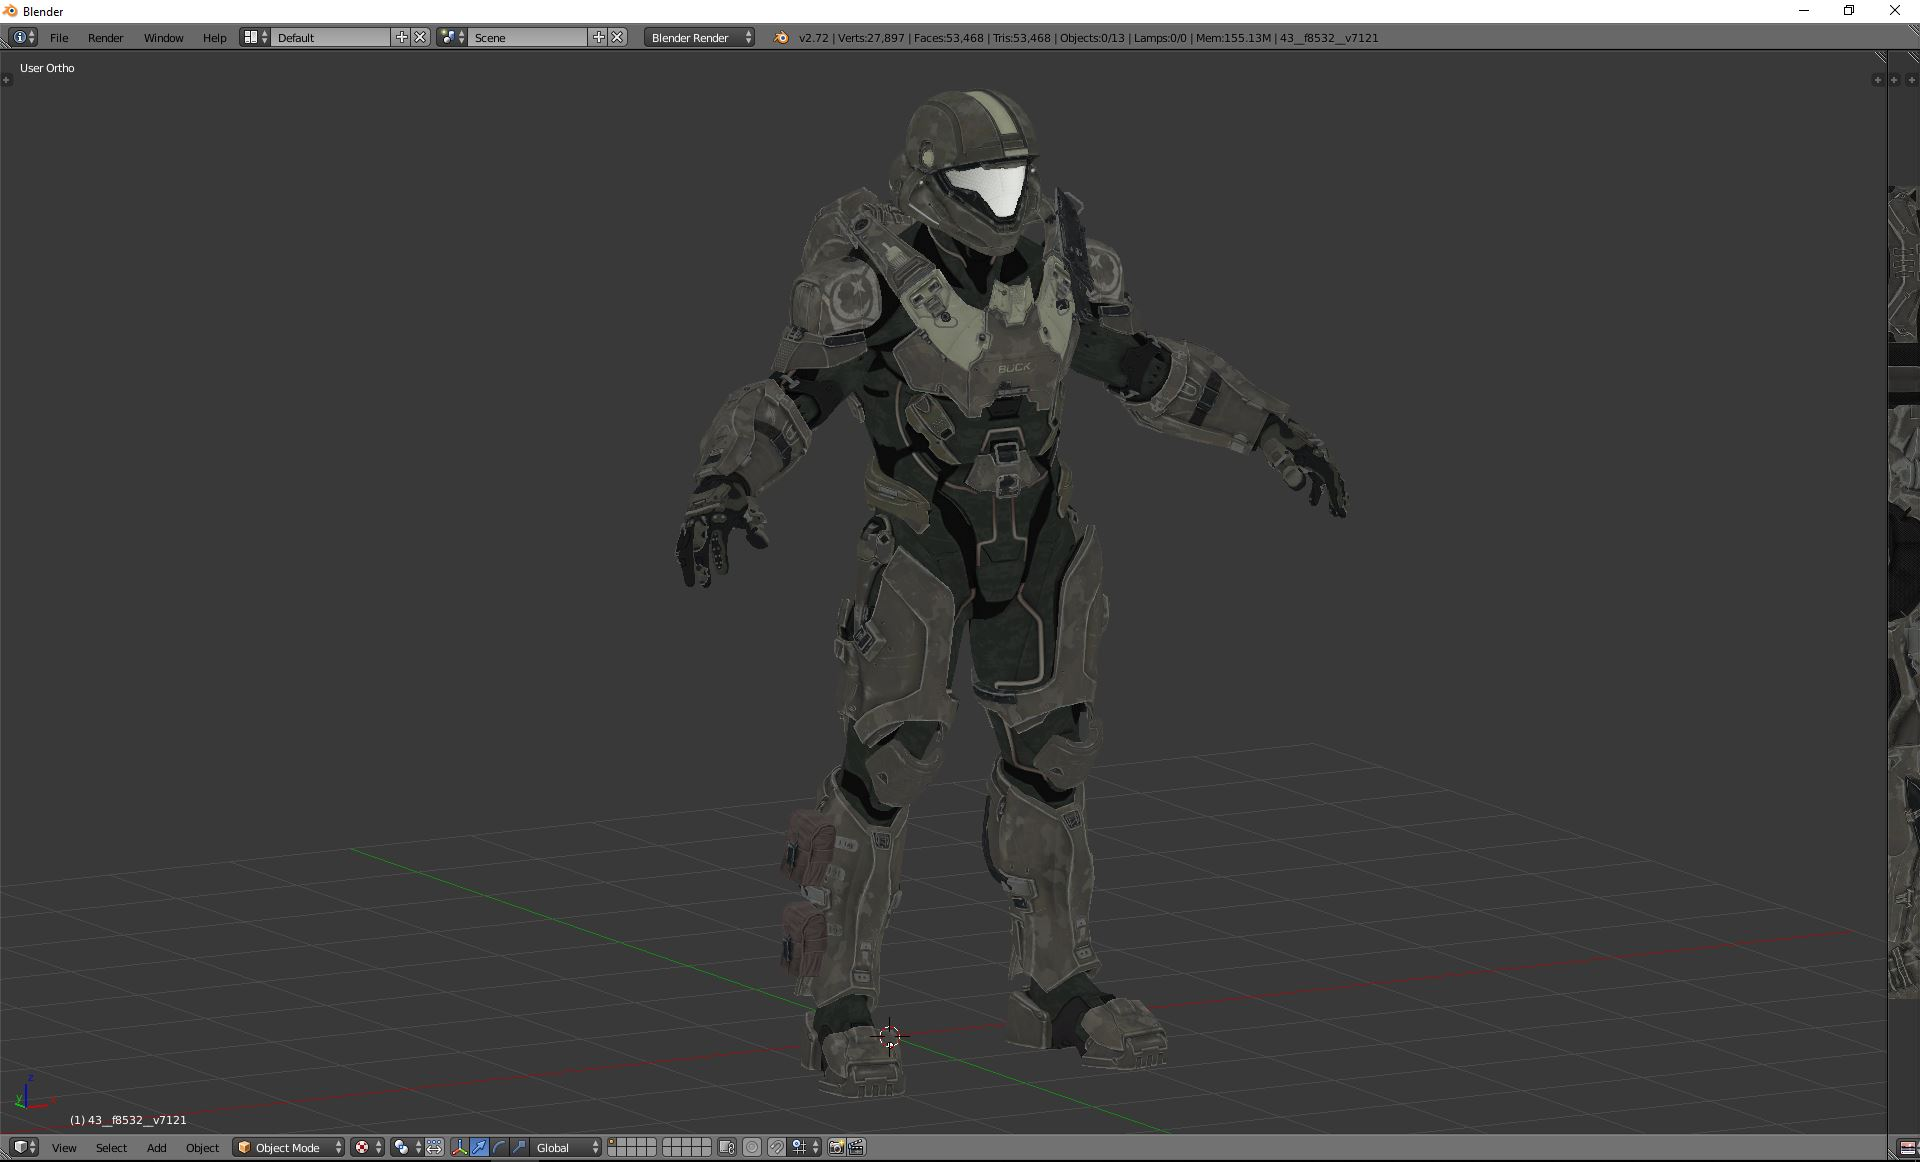 Halo 5 Asset Thread - The Second Coming | Halo Costume and Prop